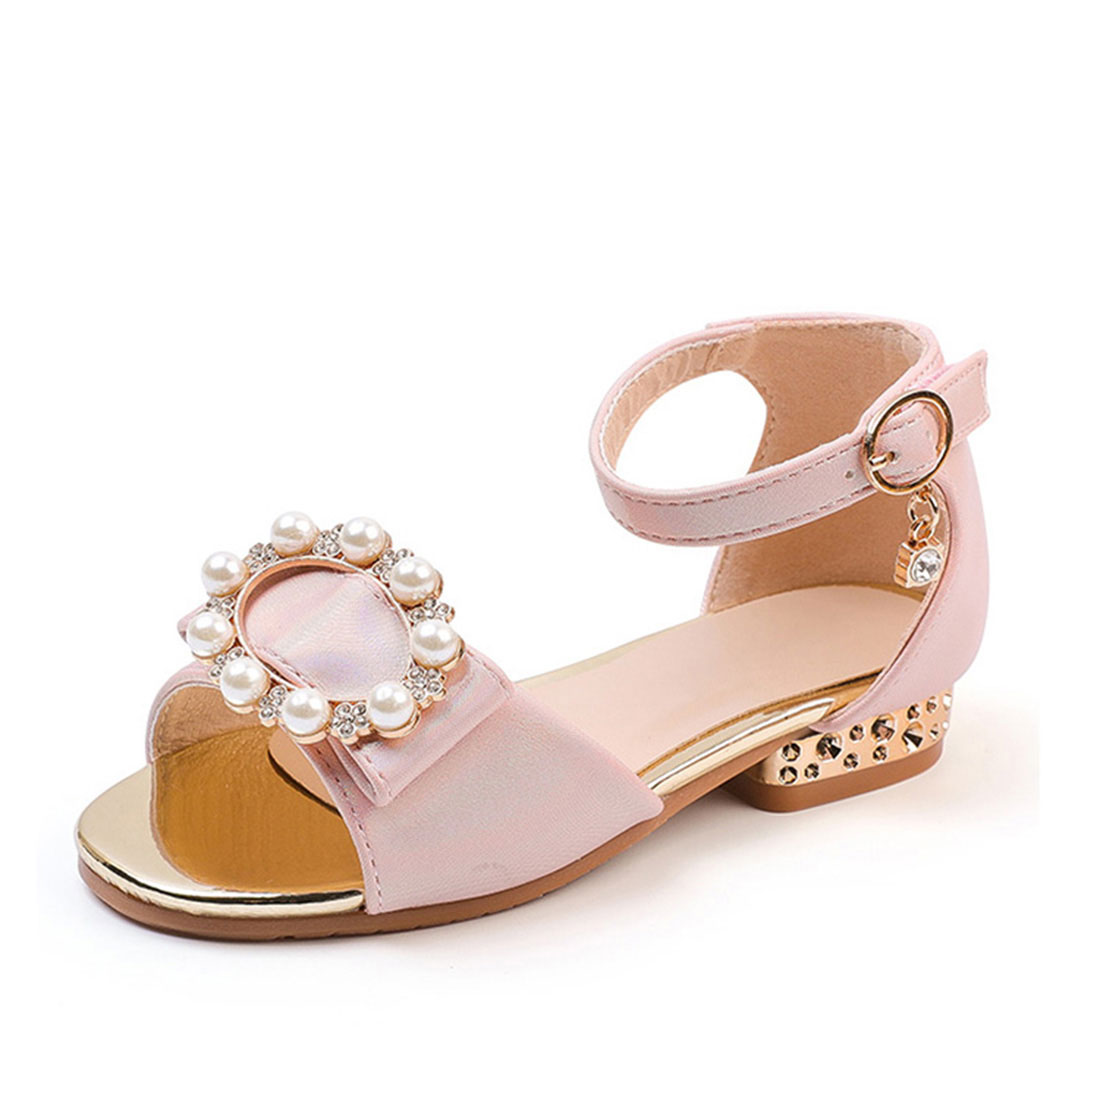 Custom genuine leather low heel luxury with pearls diamante flower kids sandals